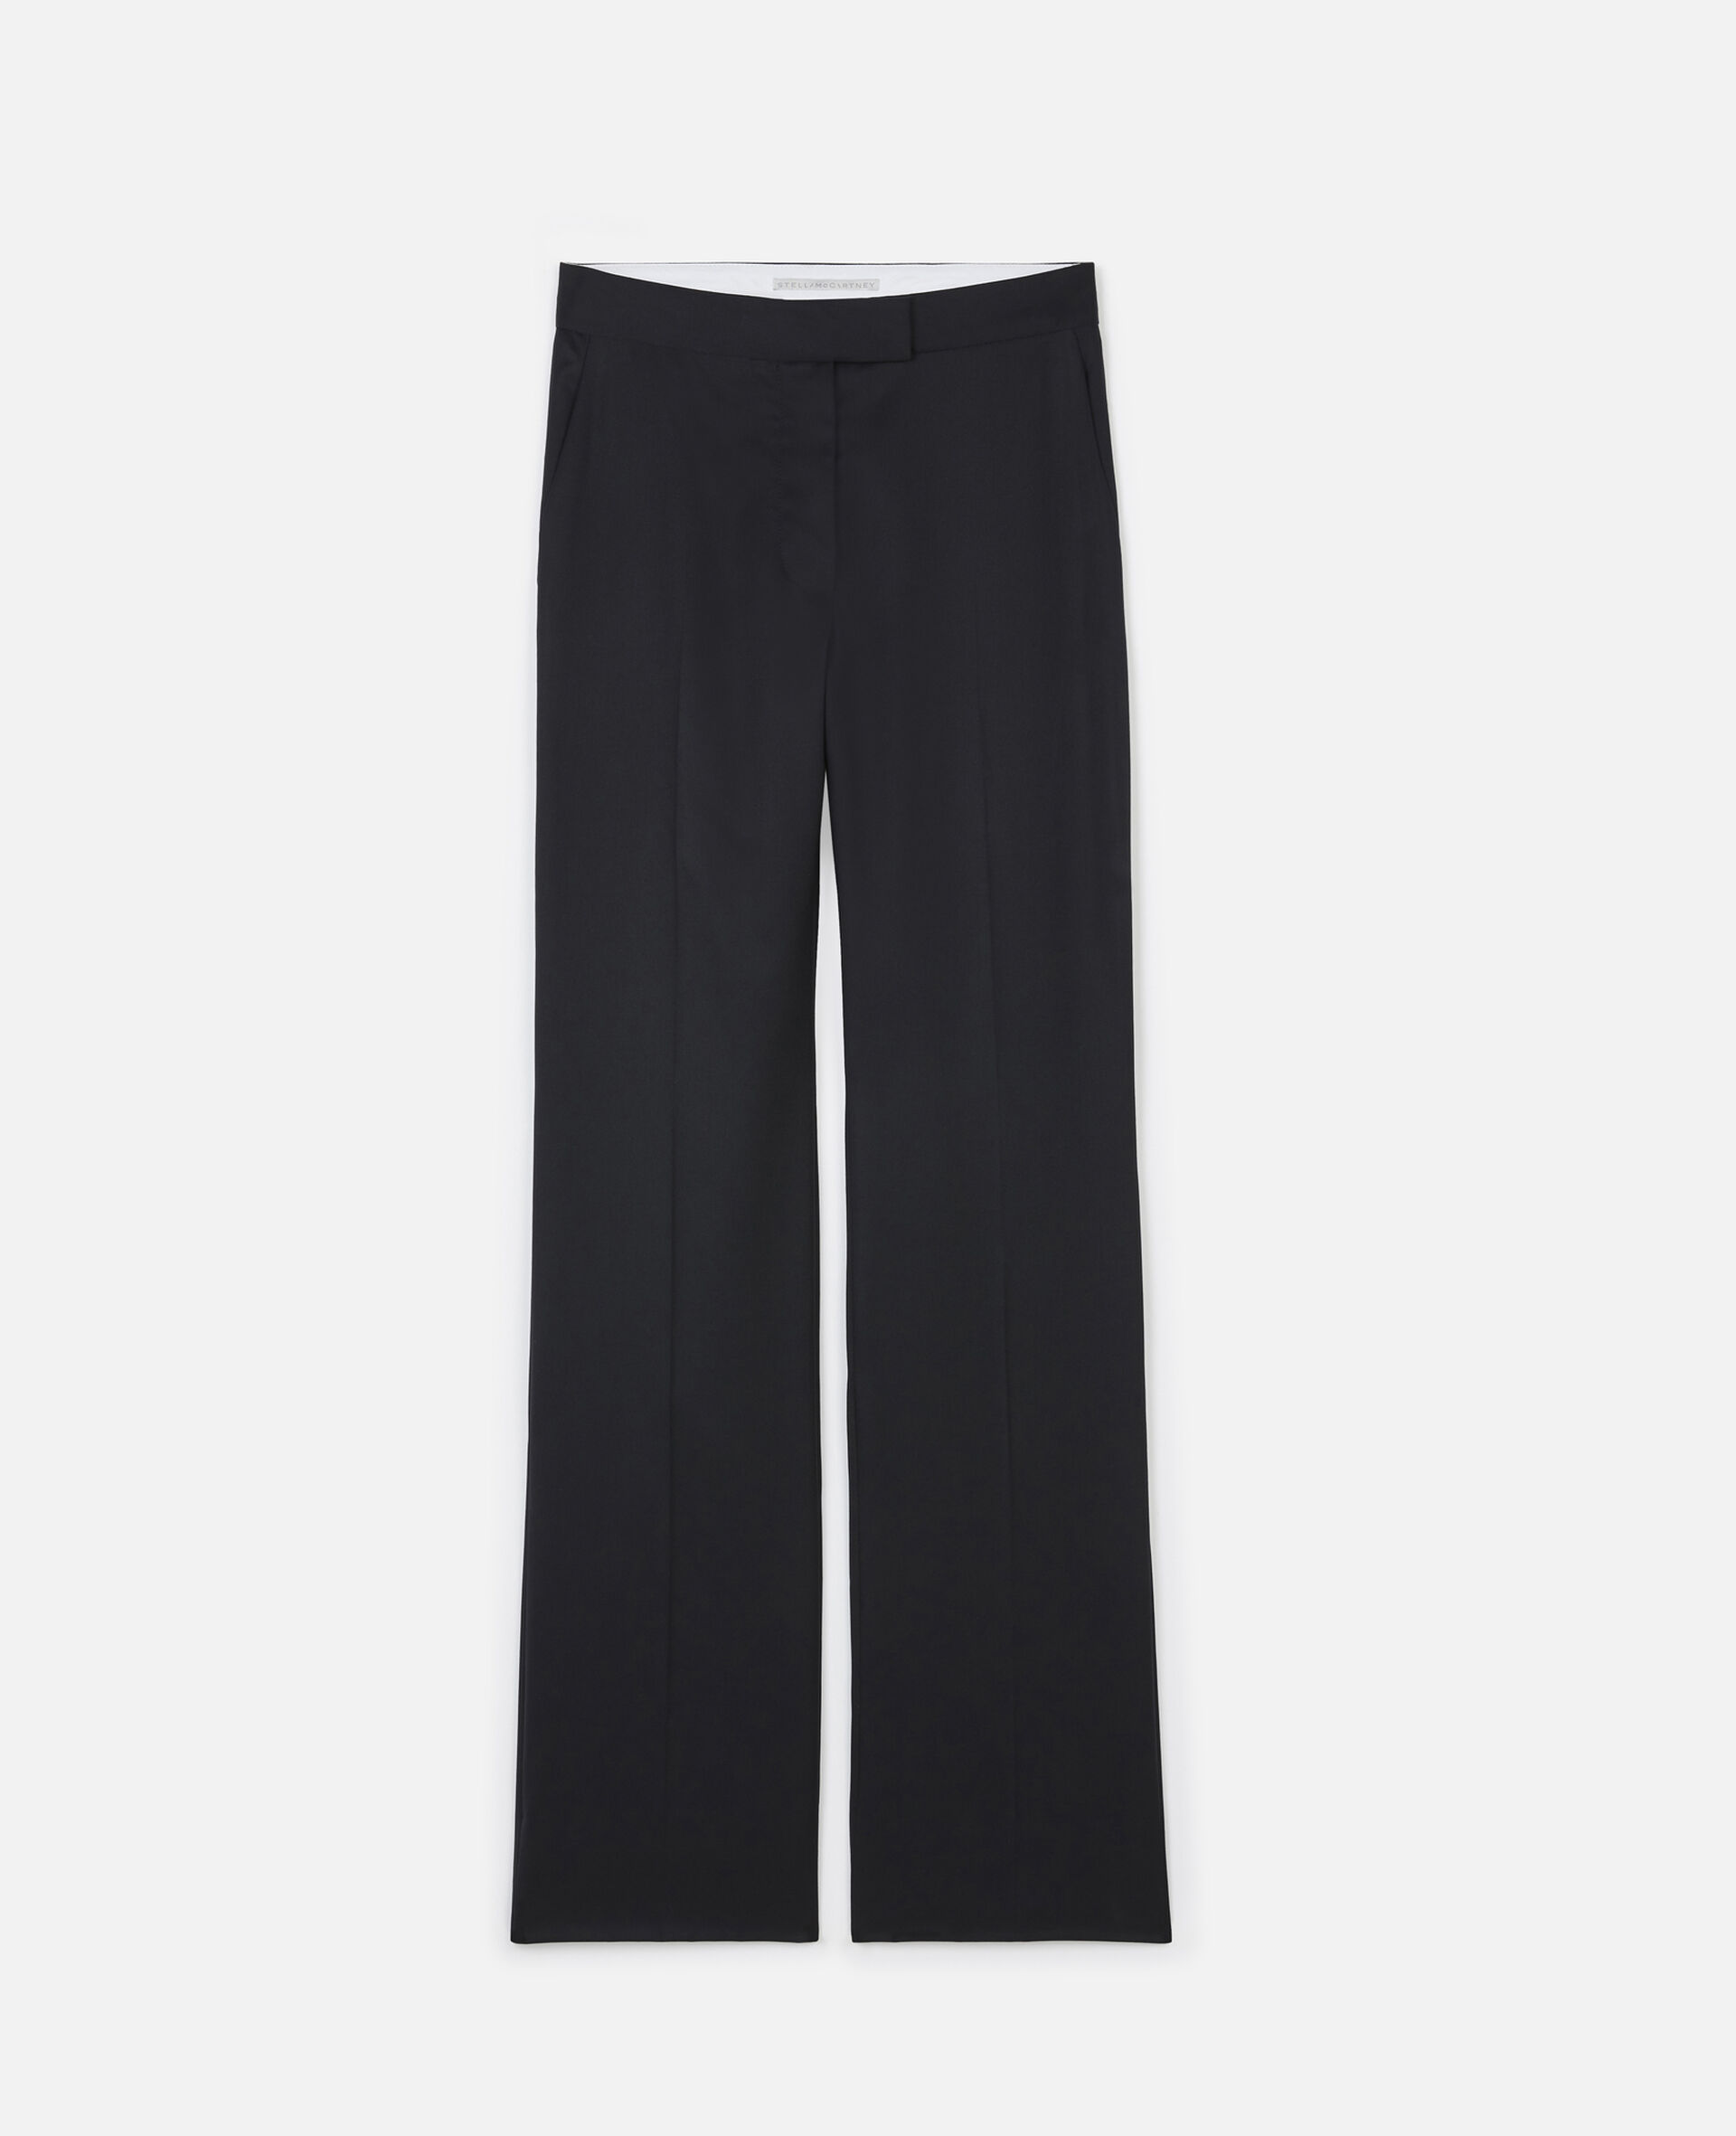 Apollo Bay Trousers -Black-large image number 0